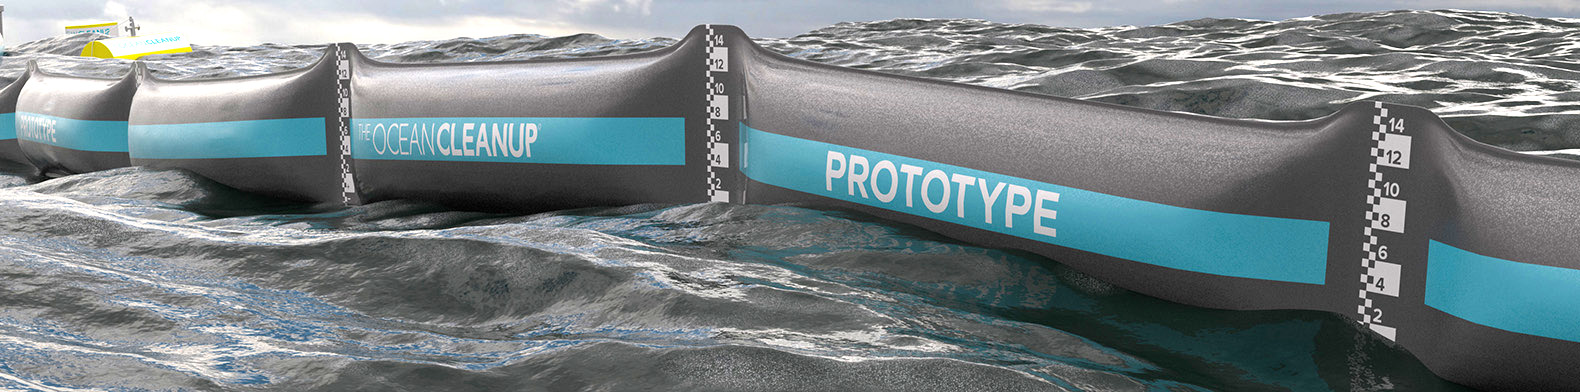 Ocean Cleanup Launches Historic First Prototype Thanks To Dutch Backing